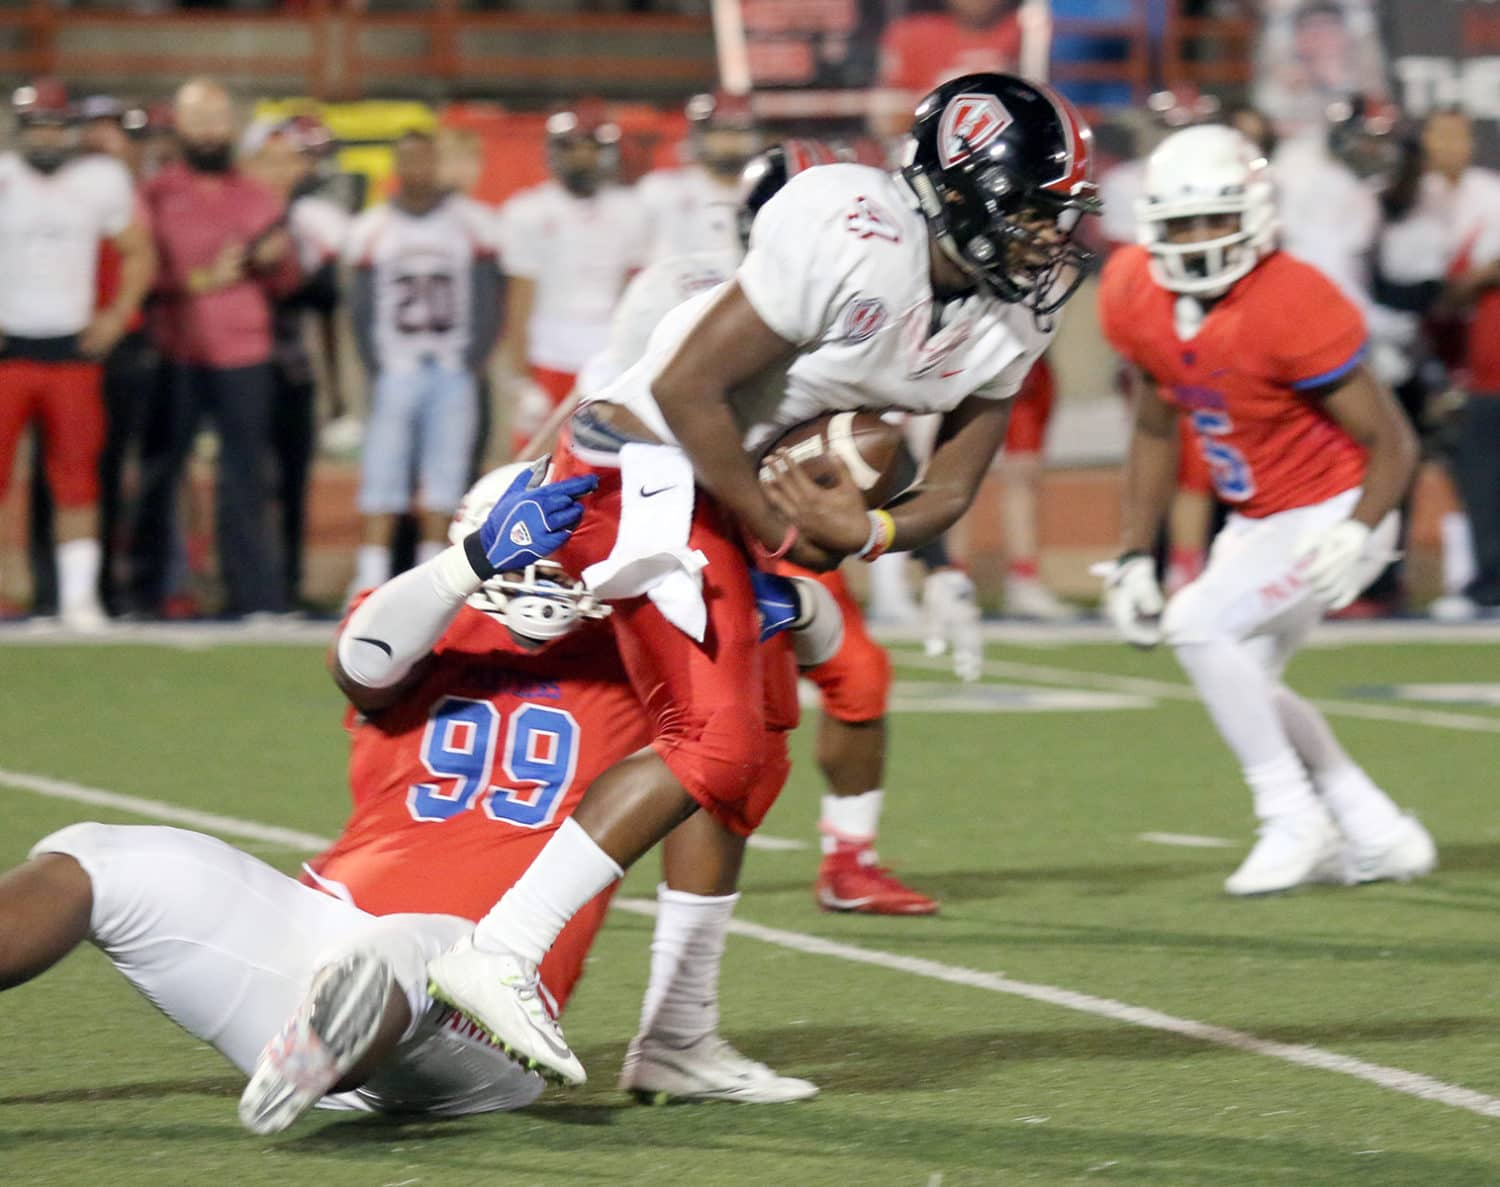 Defensive Tackle Javion Adams brings down Harker Heights Quarterback Robert Gray. (Jose Sanchez/Duncanville High School)